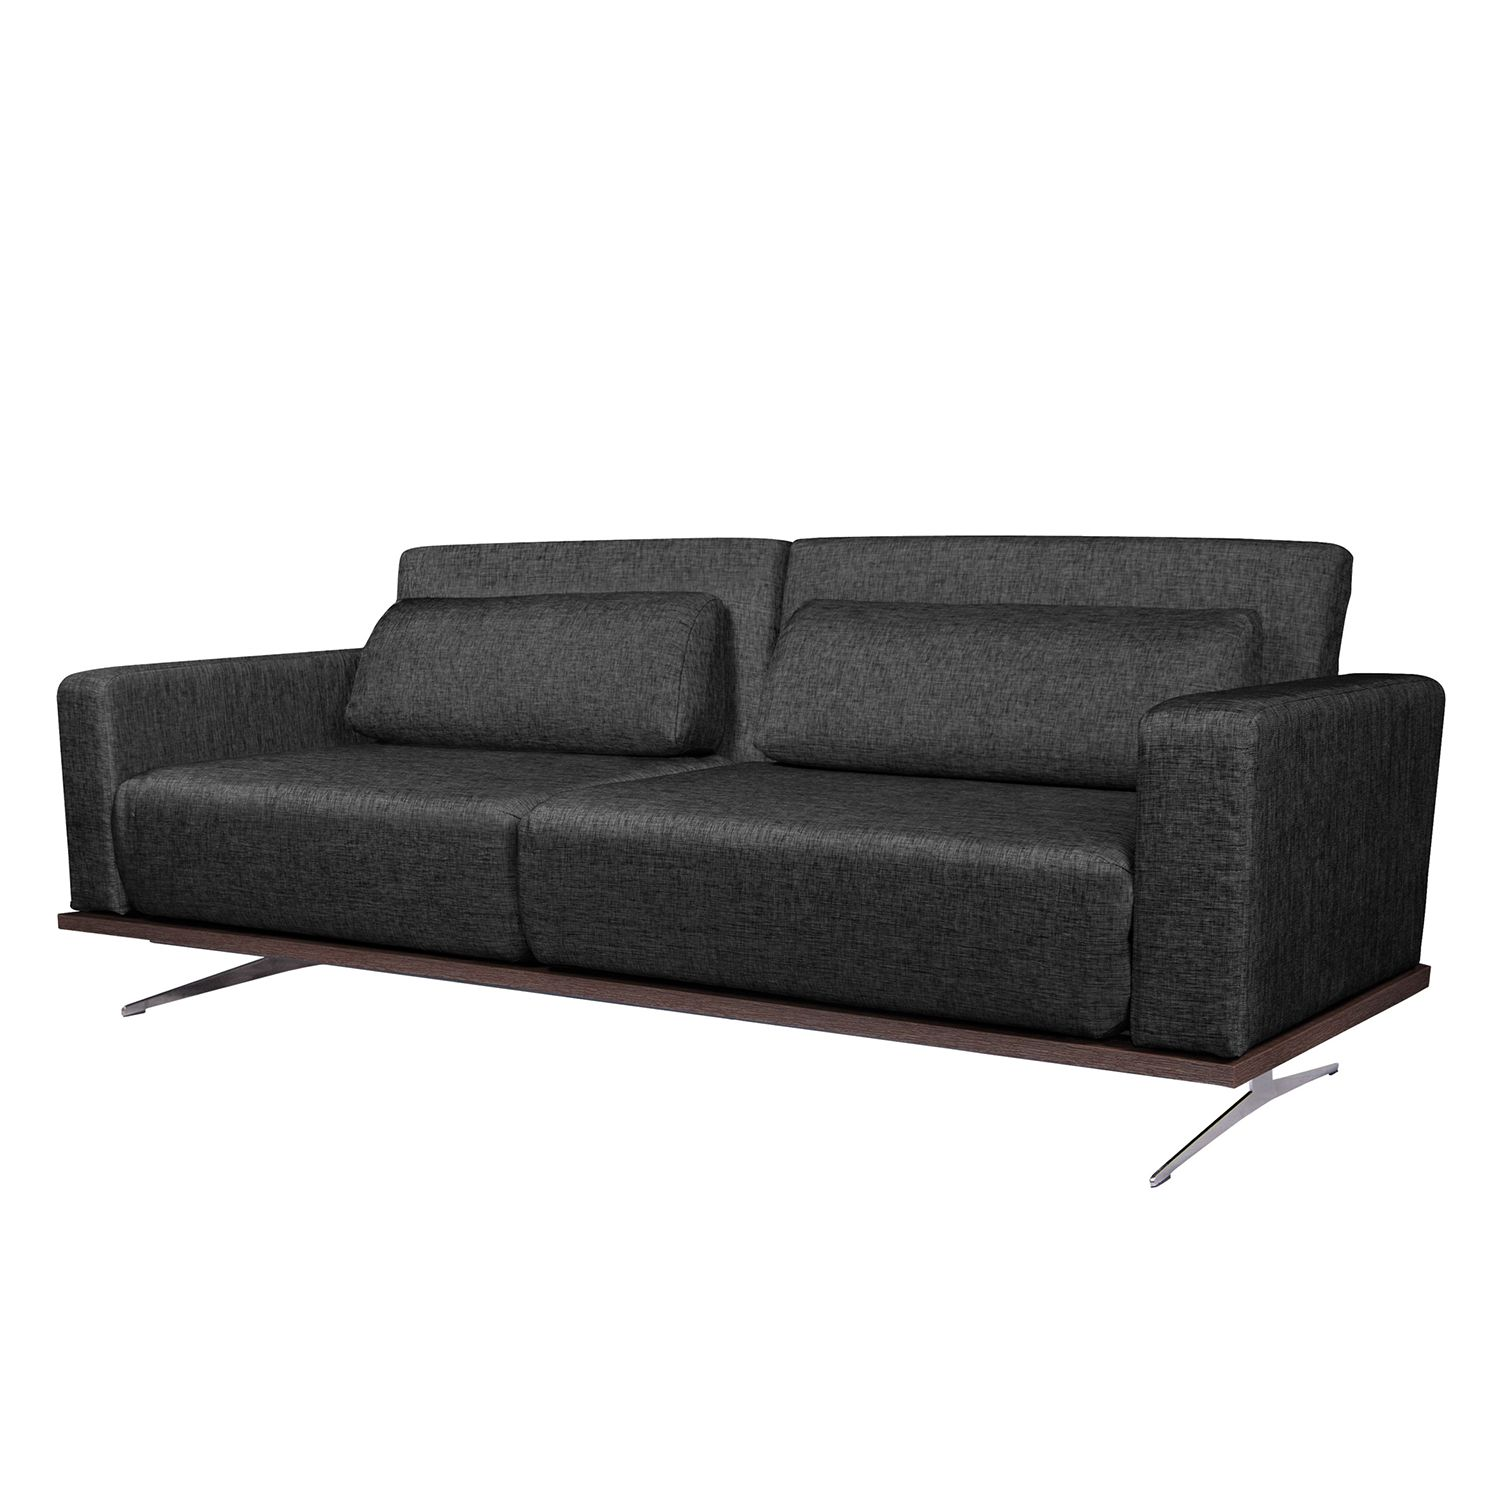 schlafsofa copperfield i webstoff stoff parsa grau schwarz jetzt kaufen. Black Bedroom Furniture Sets. Home Design Ideas